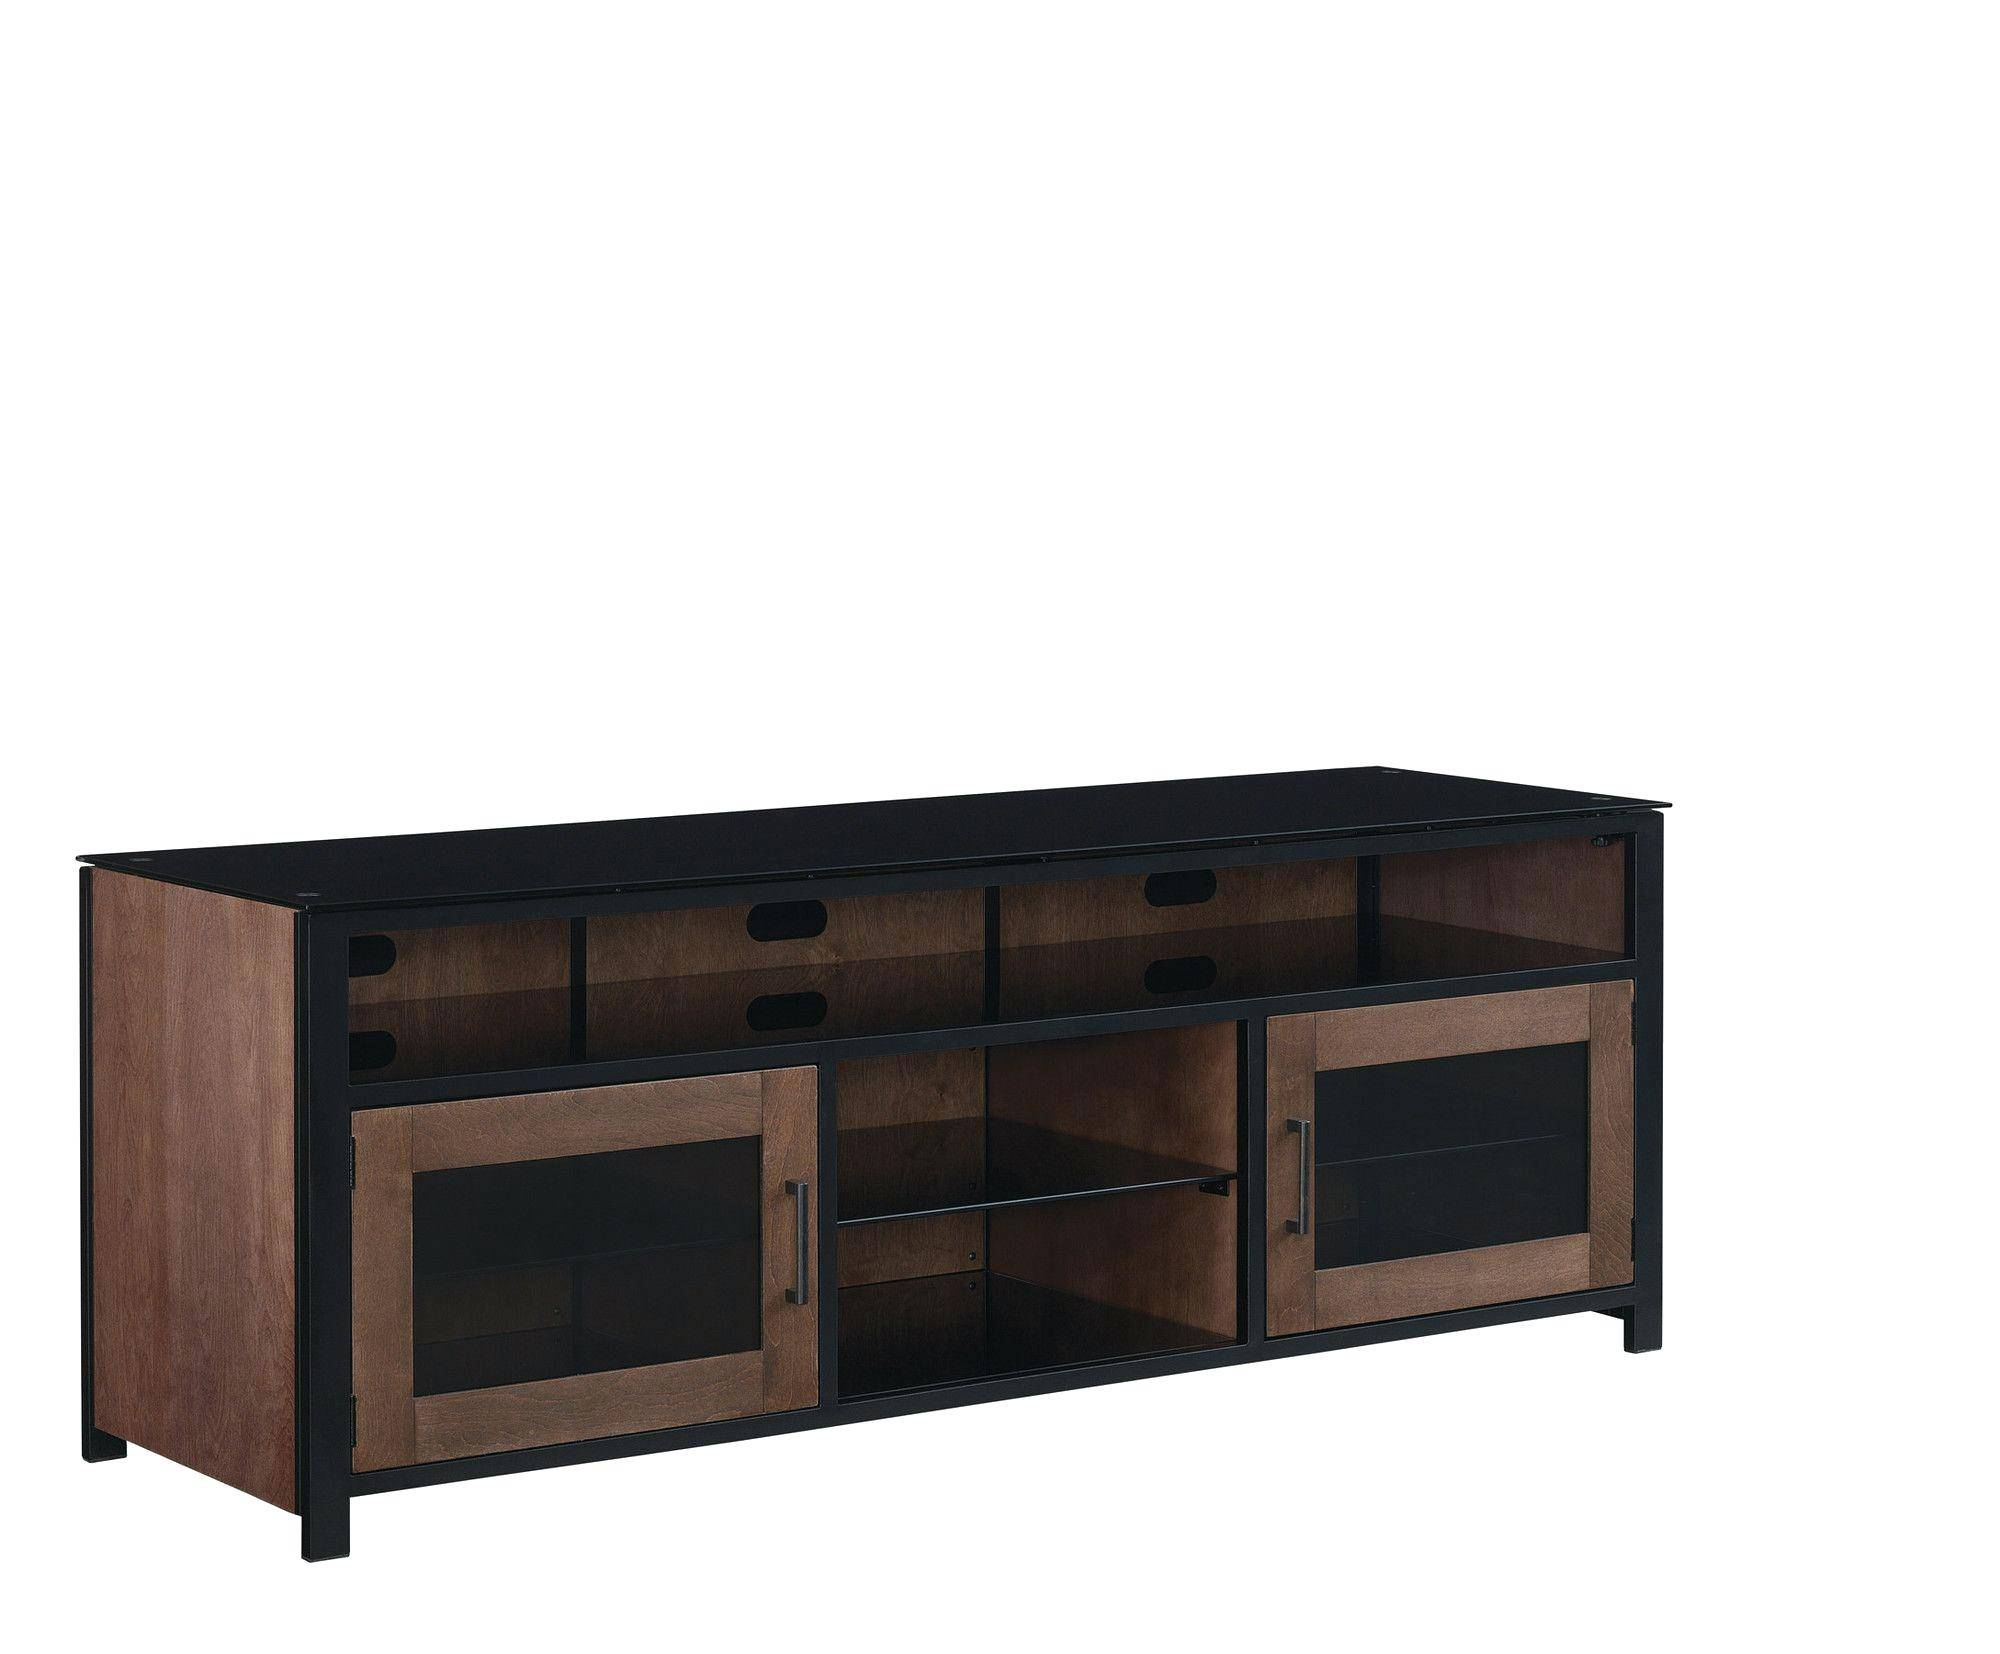 Tv Stand: Mesmerizing Bedford Tv Stand For Living Furniture inside Bedford Tv Stands (Image 12 of 15)